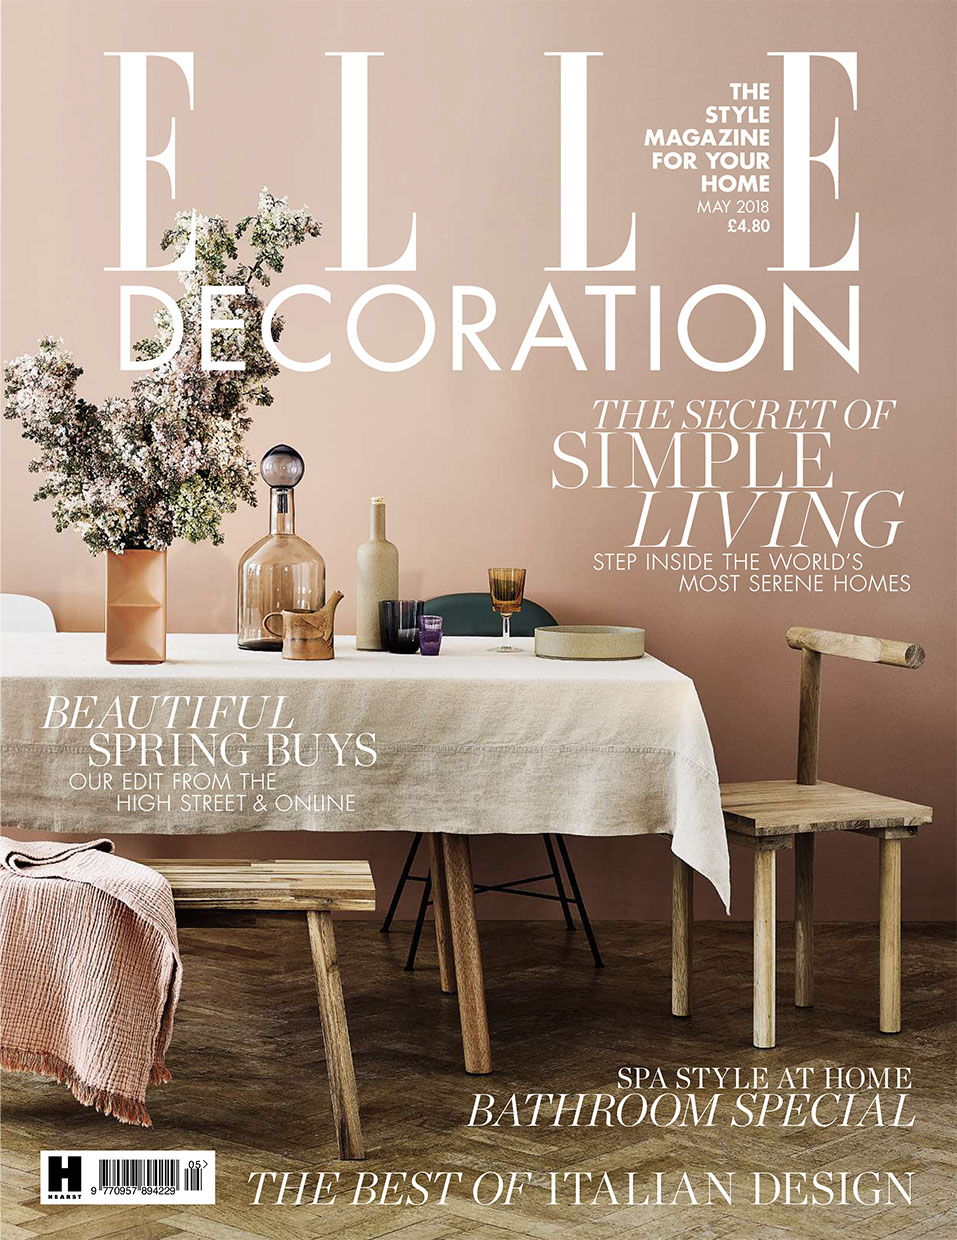 Elle Decoration May 2018 front cover styled by interior stylist Sania Pell. Photography by Jake Curtis.